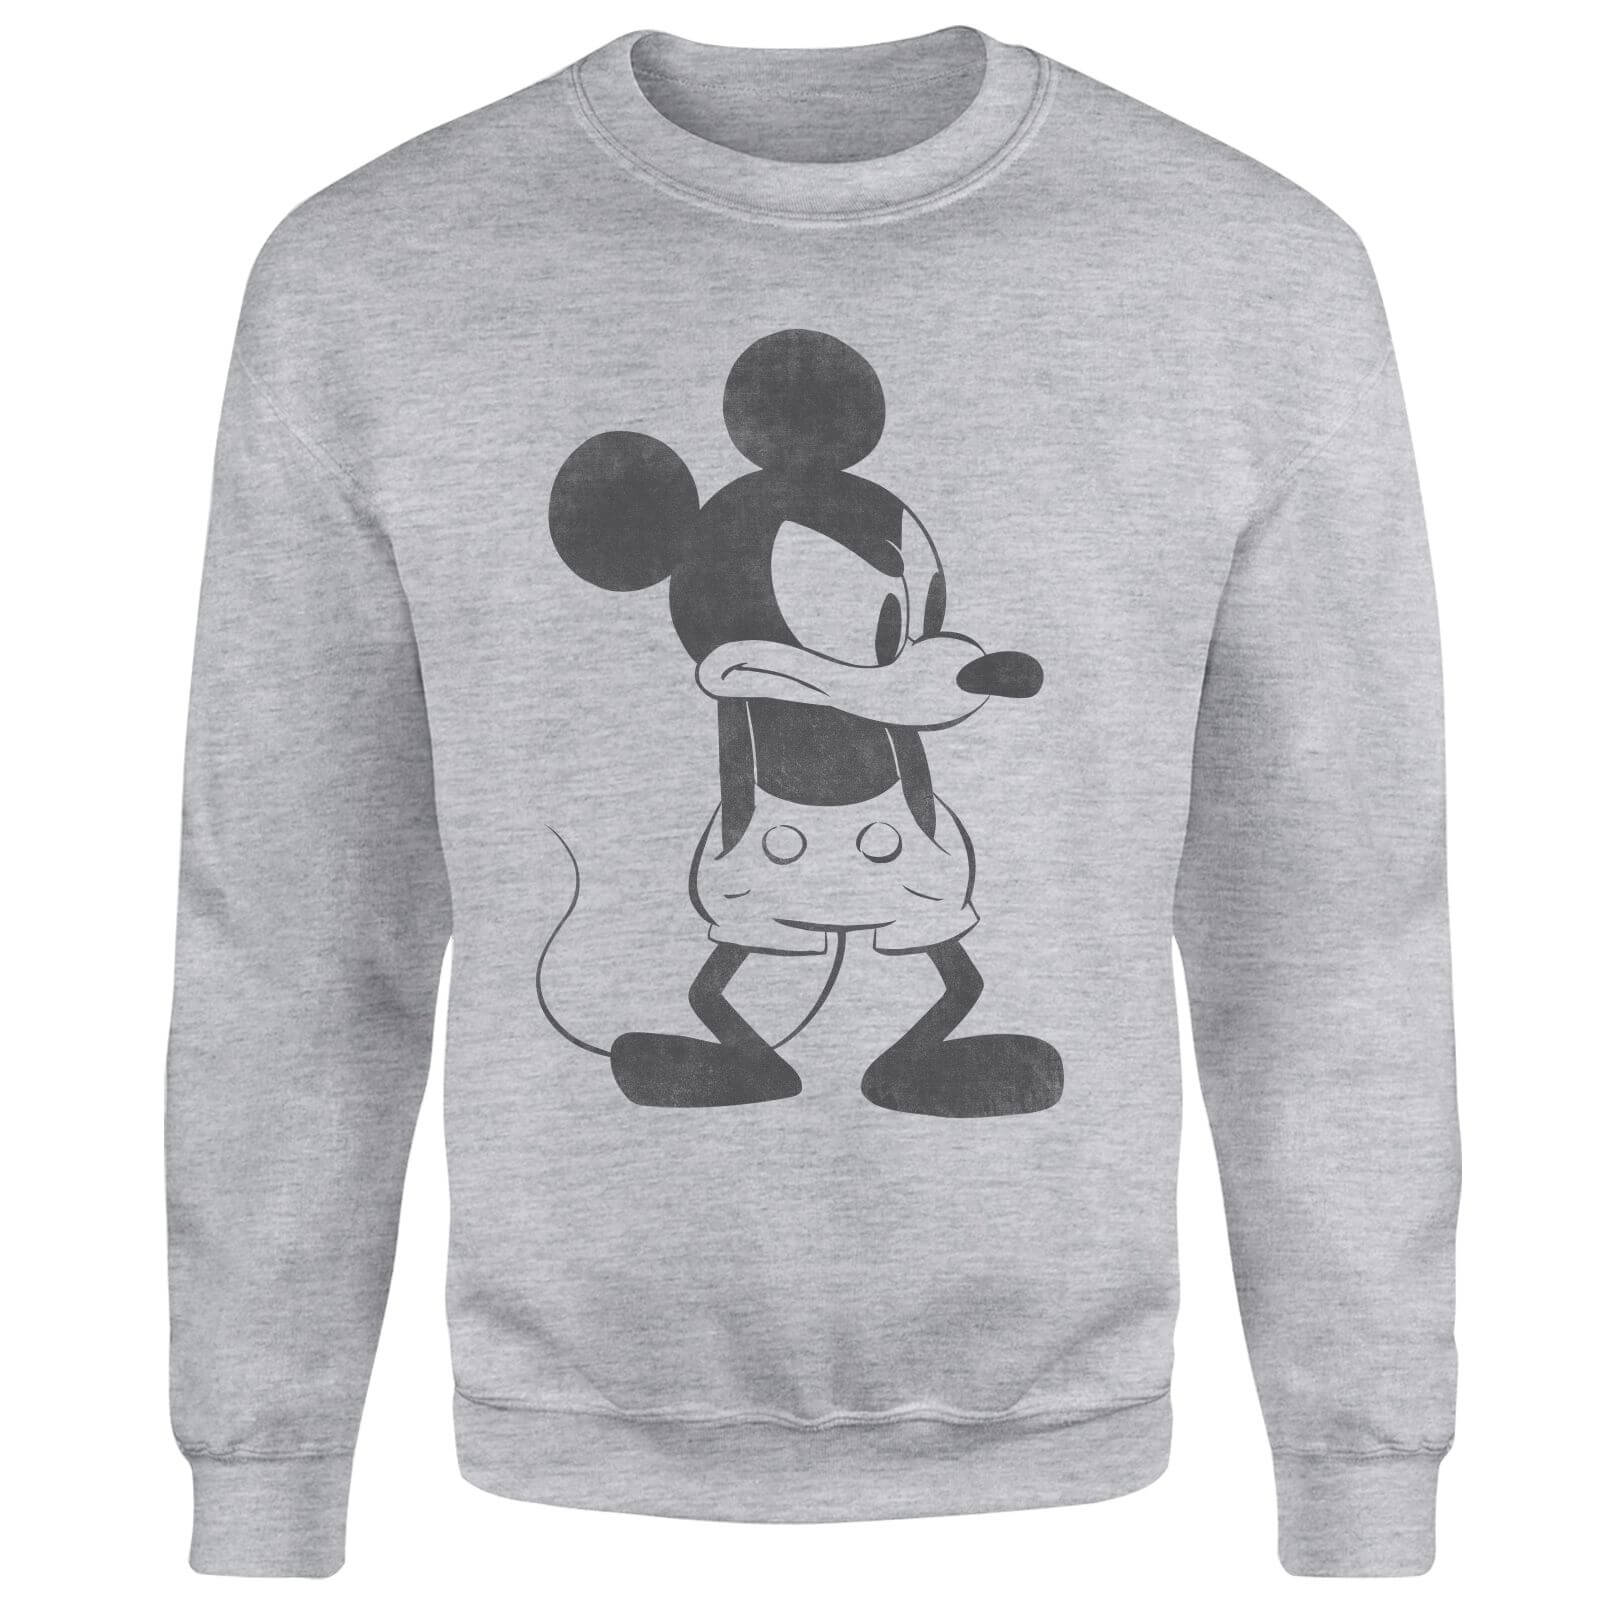 Disney Mickey Mouse Angry Sweatshirt - Grey